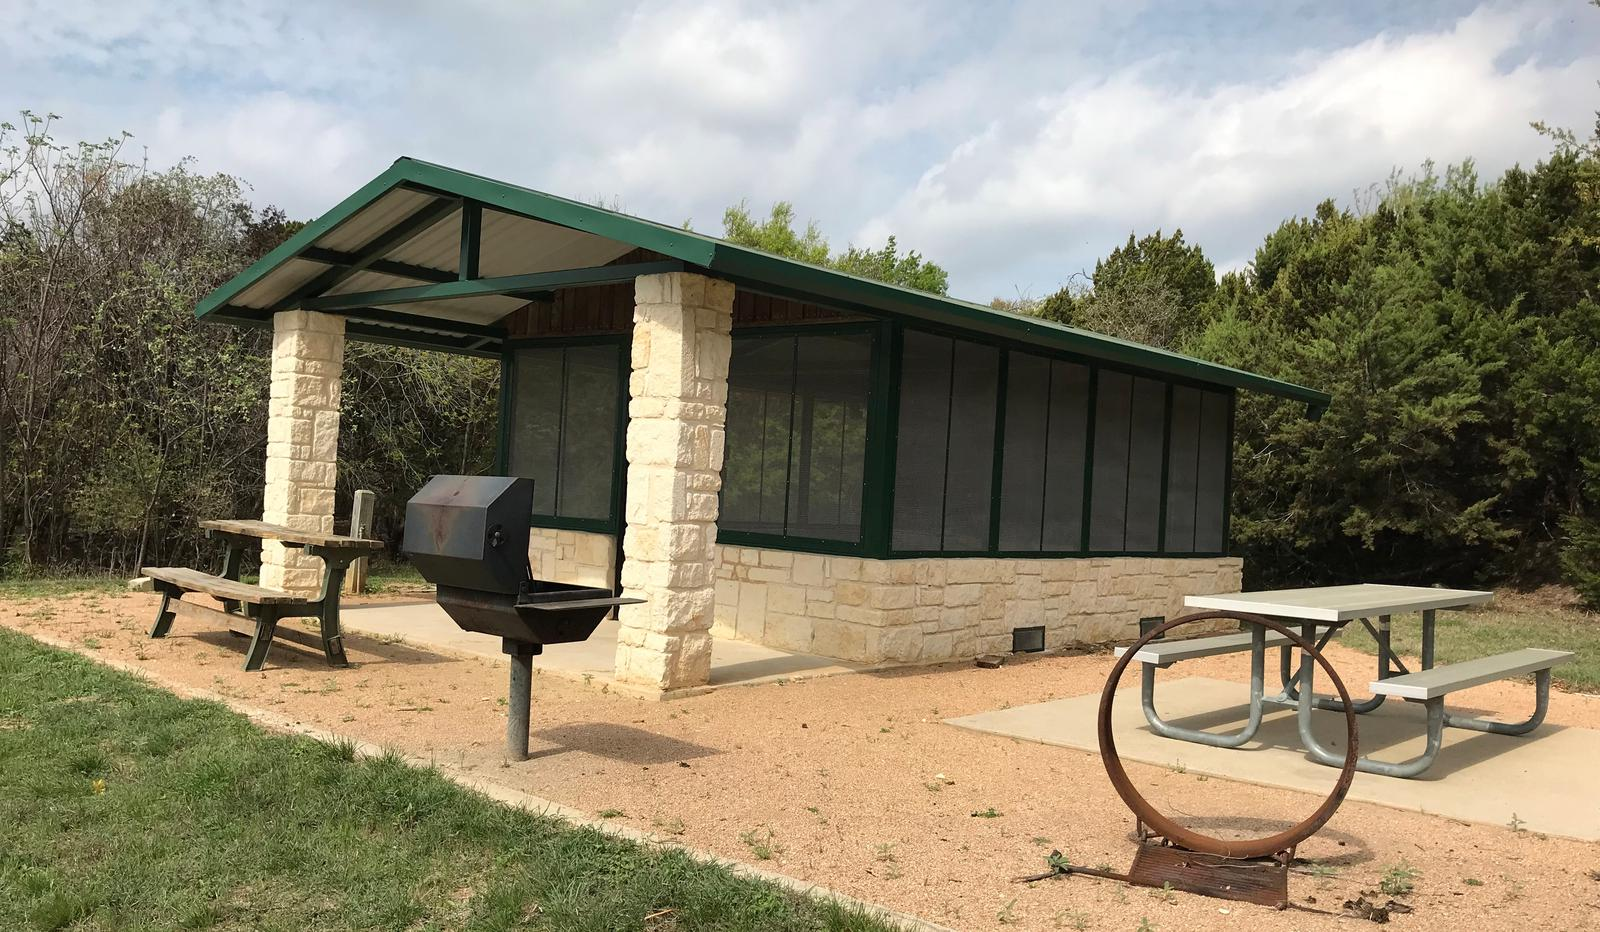 Screen shelter with picnic area, grill, and fire ring